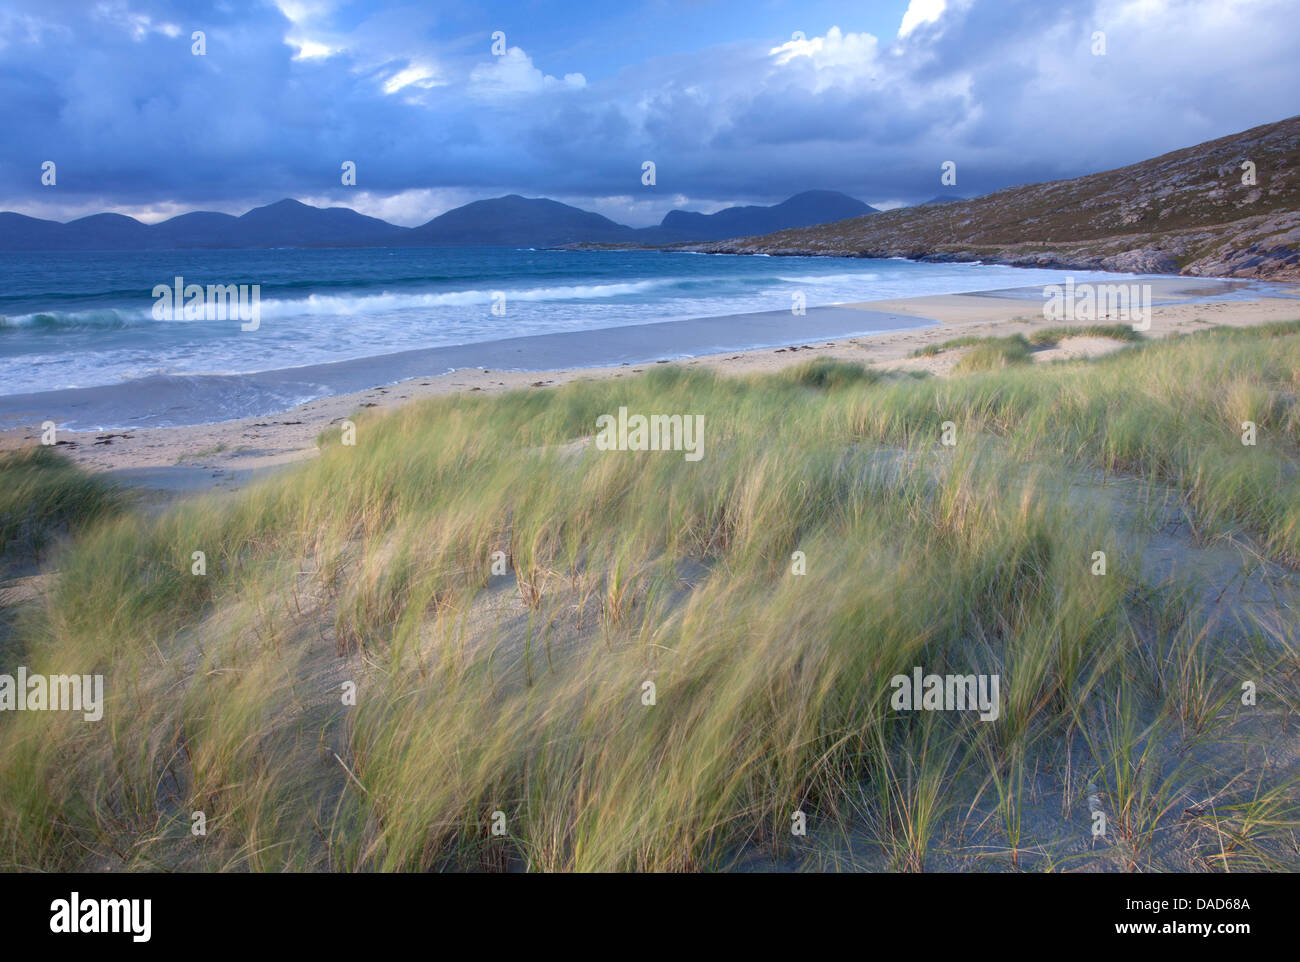 Beach at Luskentyre with dune grasses blowing in the foreground, Isle of Harris, Outer Hebrides, Scotland - Stock Image